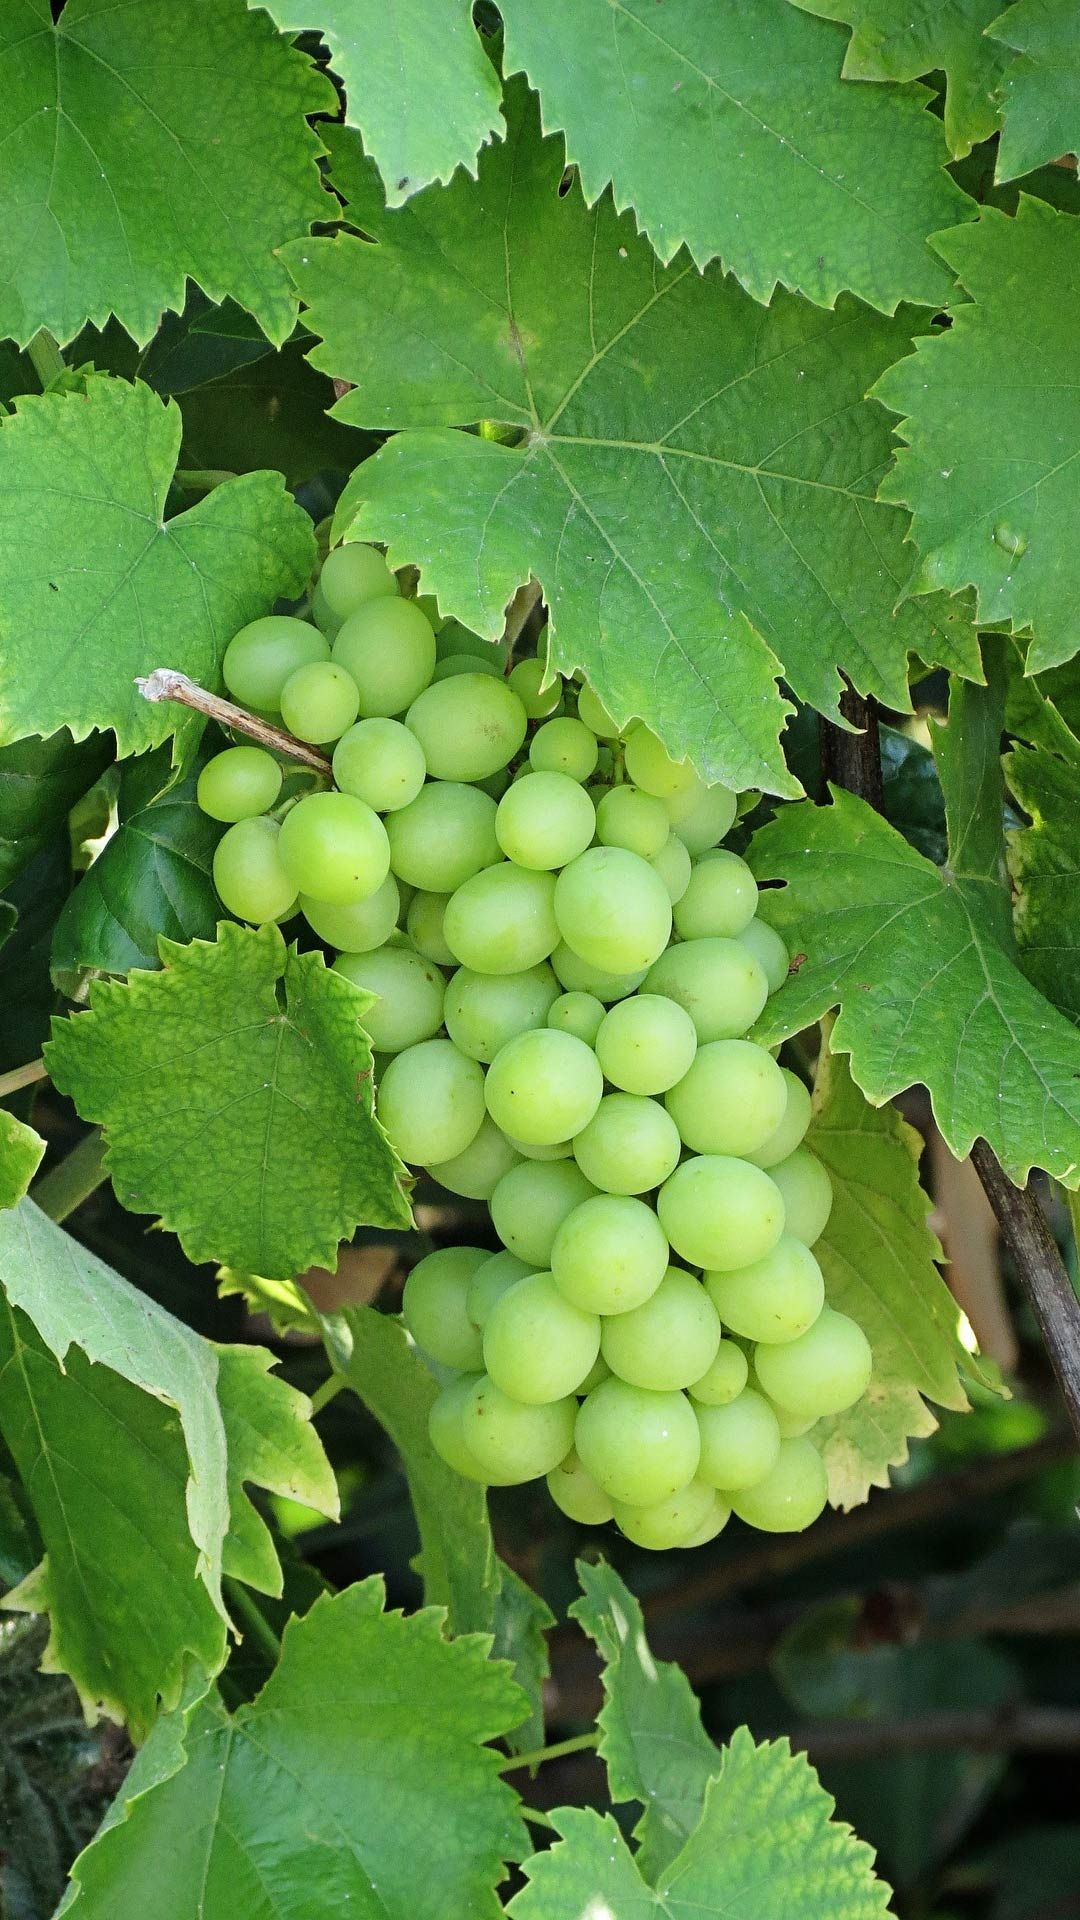 Green Grapes Wallpaper For Android Mobile Phone Grape Wallpaper Green Grapes Grapes